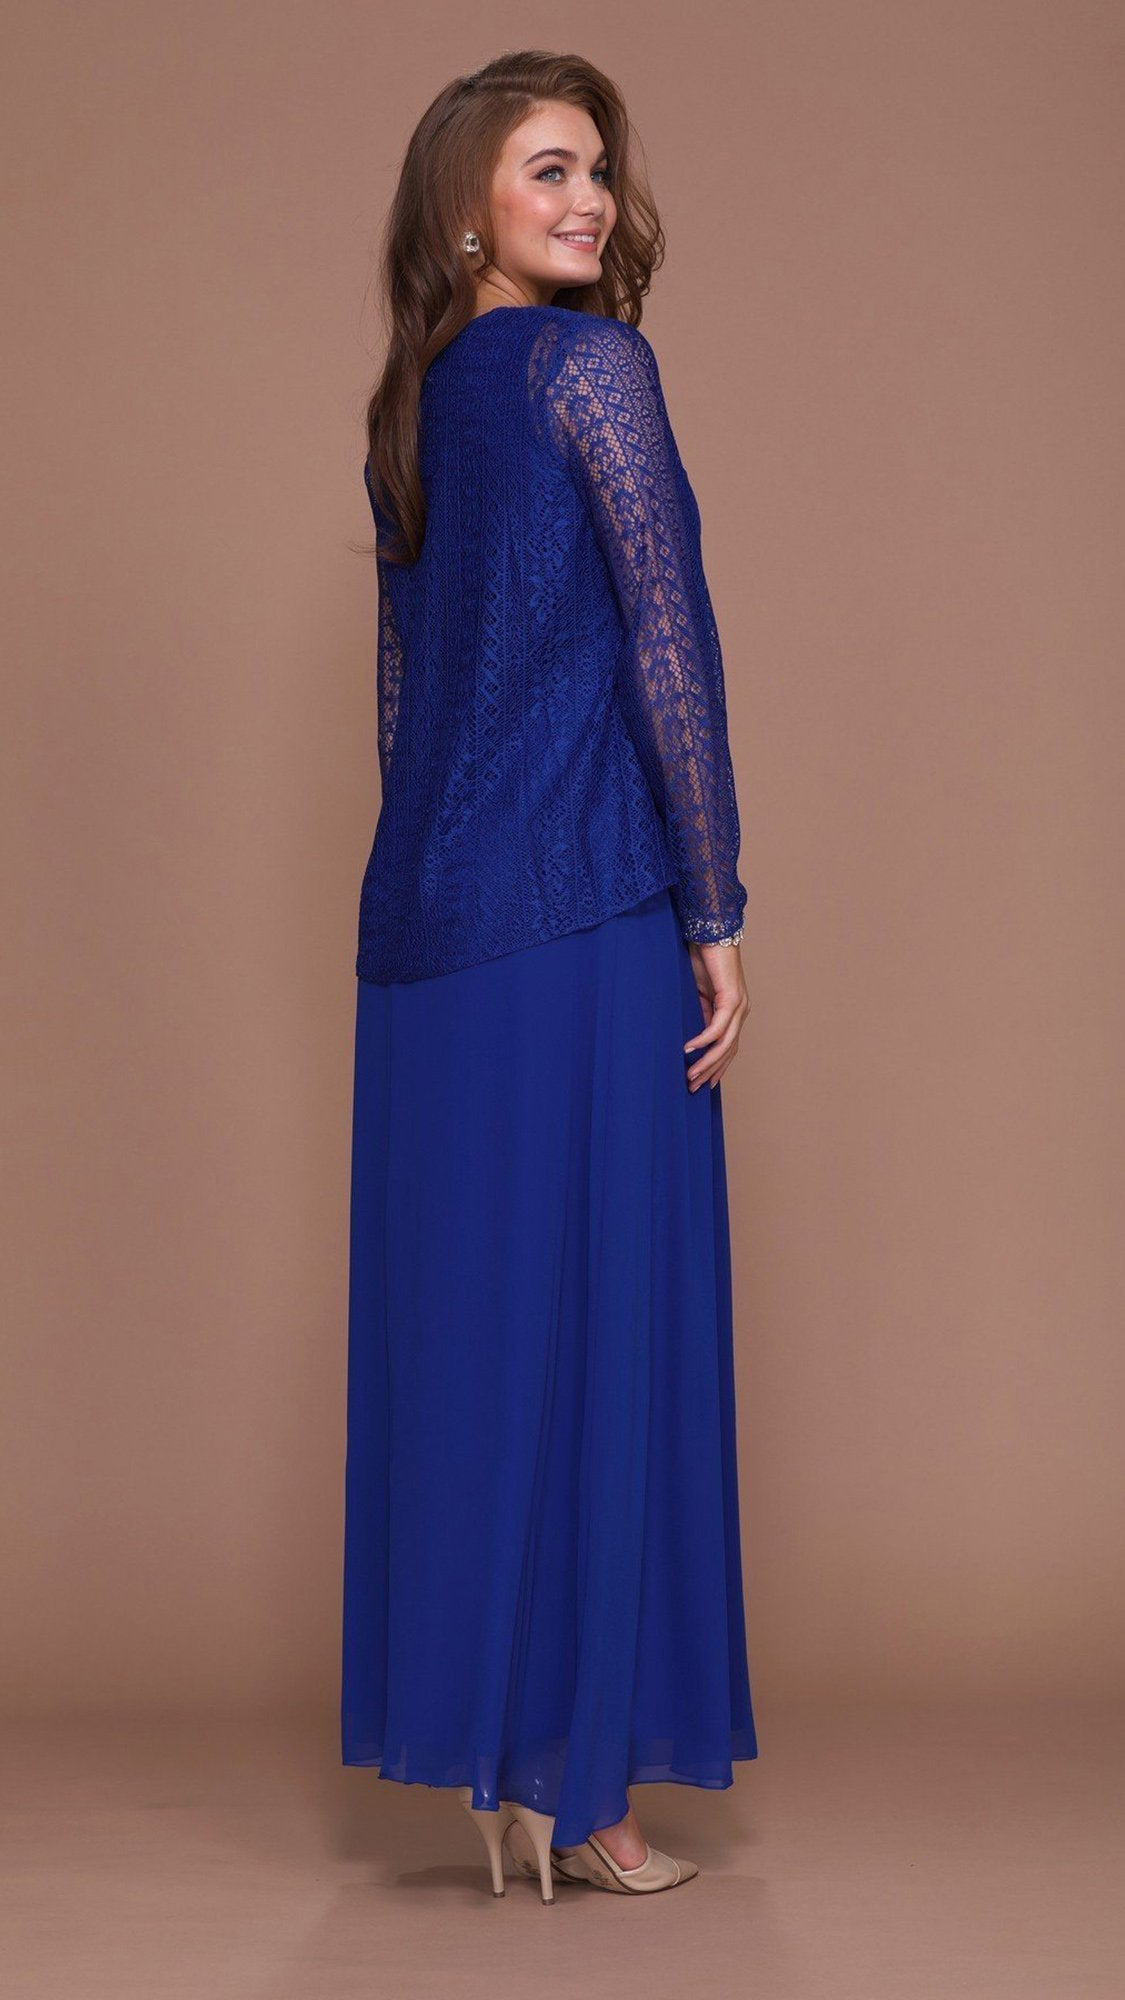 Nox Anabel - 5140SC Long V-Neck Lace Dress with Sheer Jacket